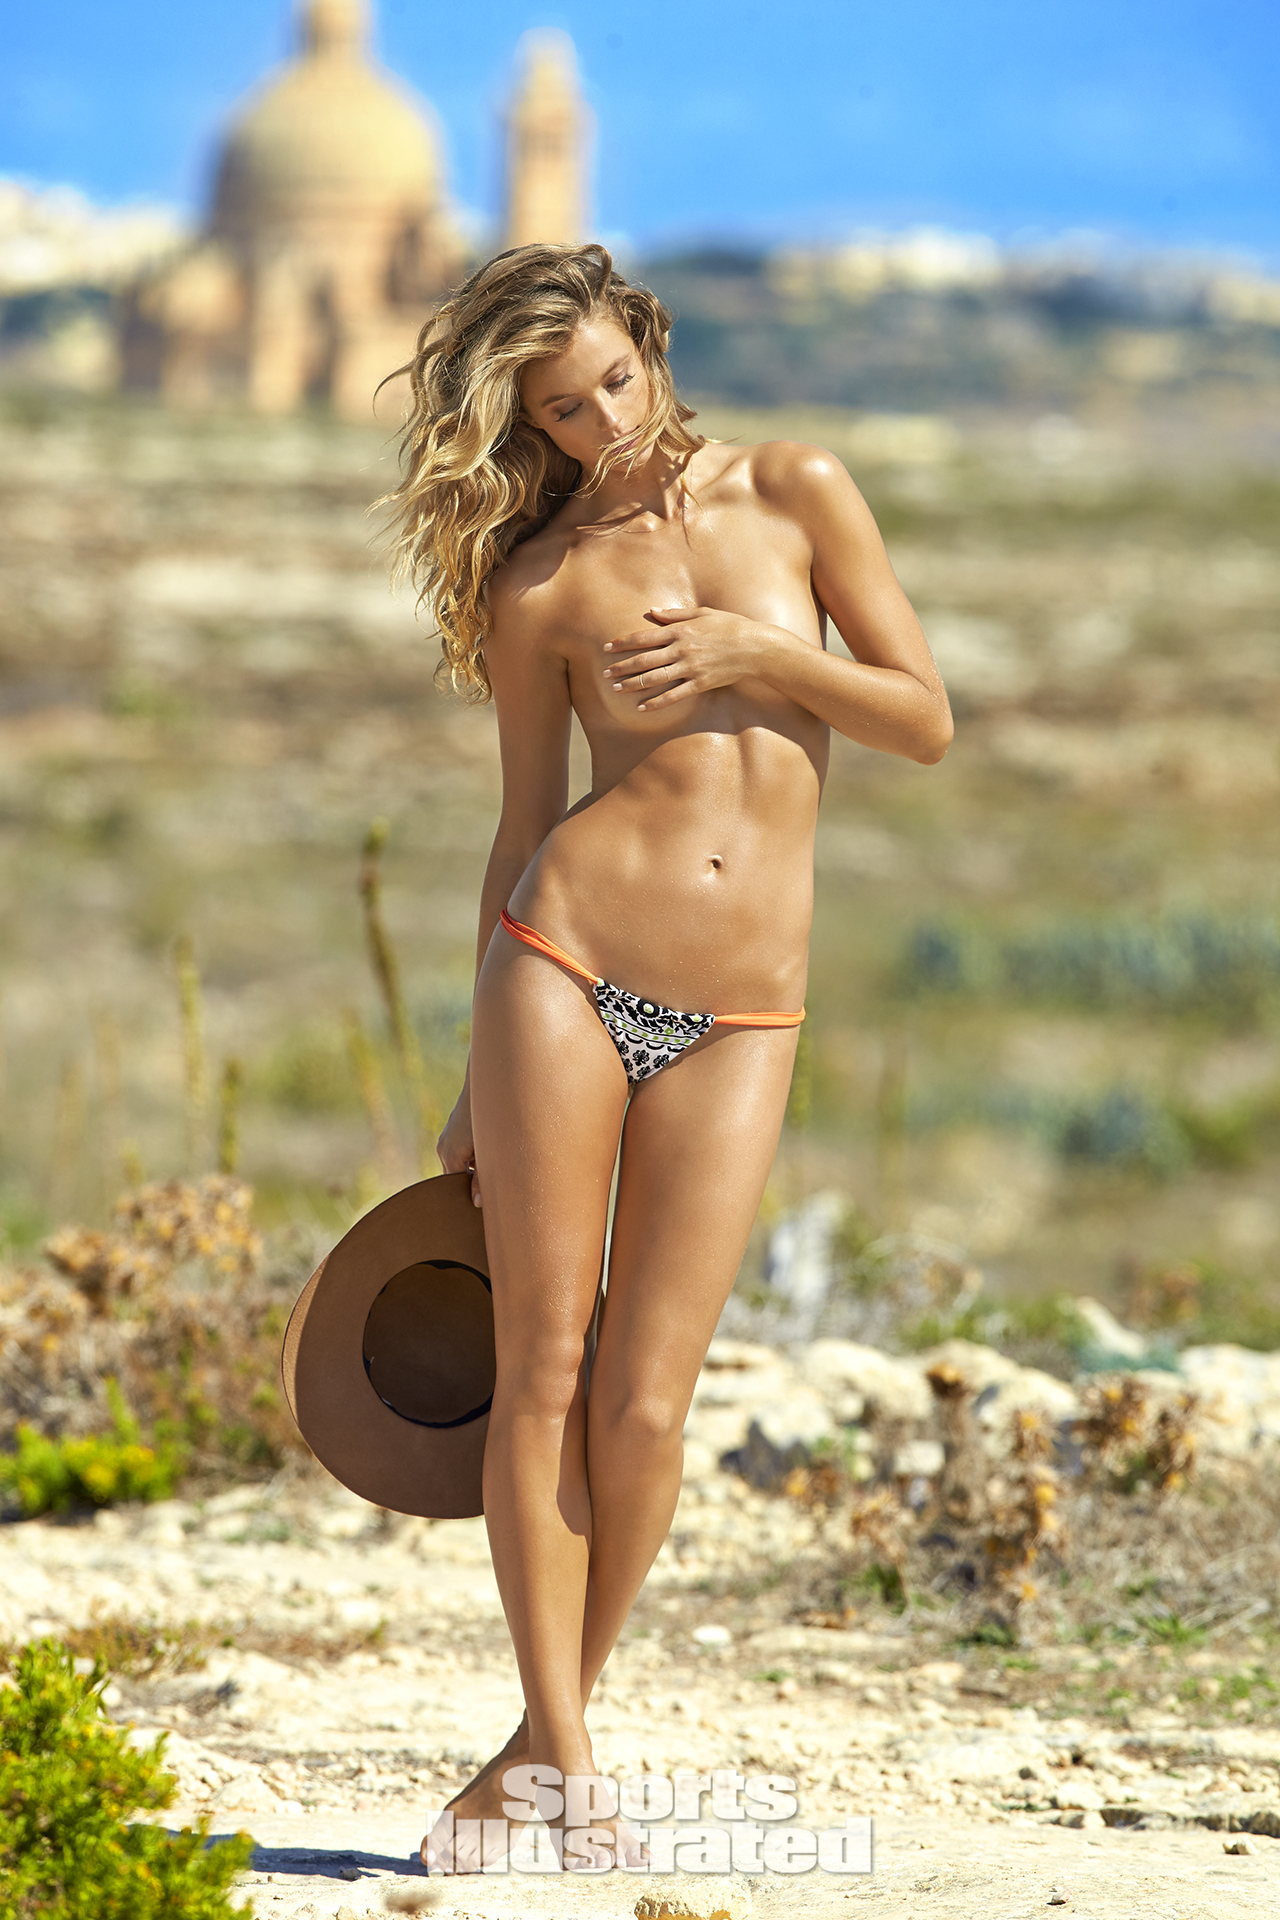 Kate Bock was photographed by Ben Watts in Malta. Swimsuit by Ola Vida.